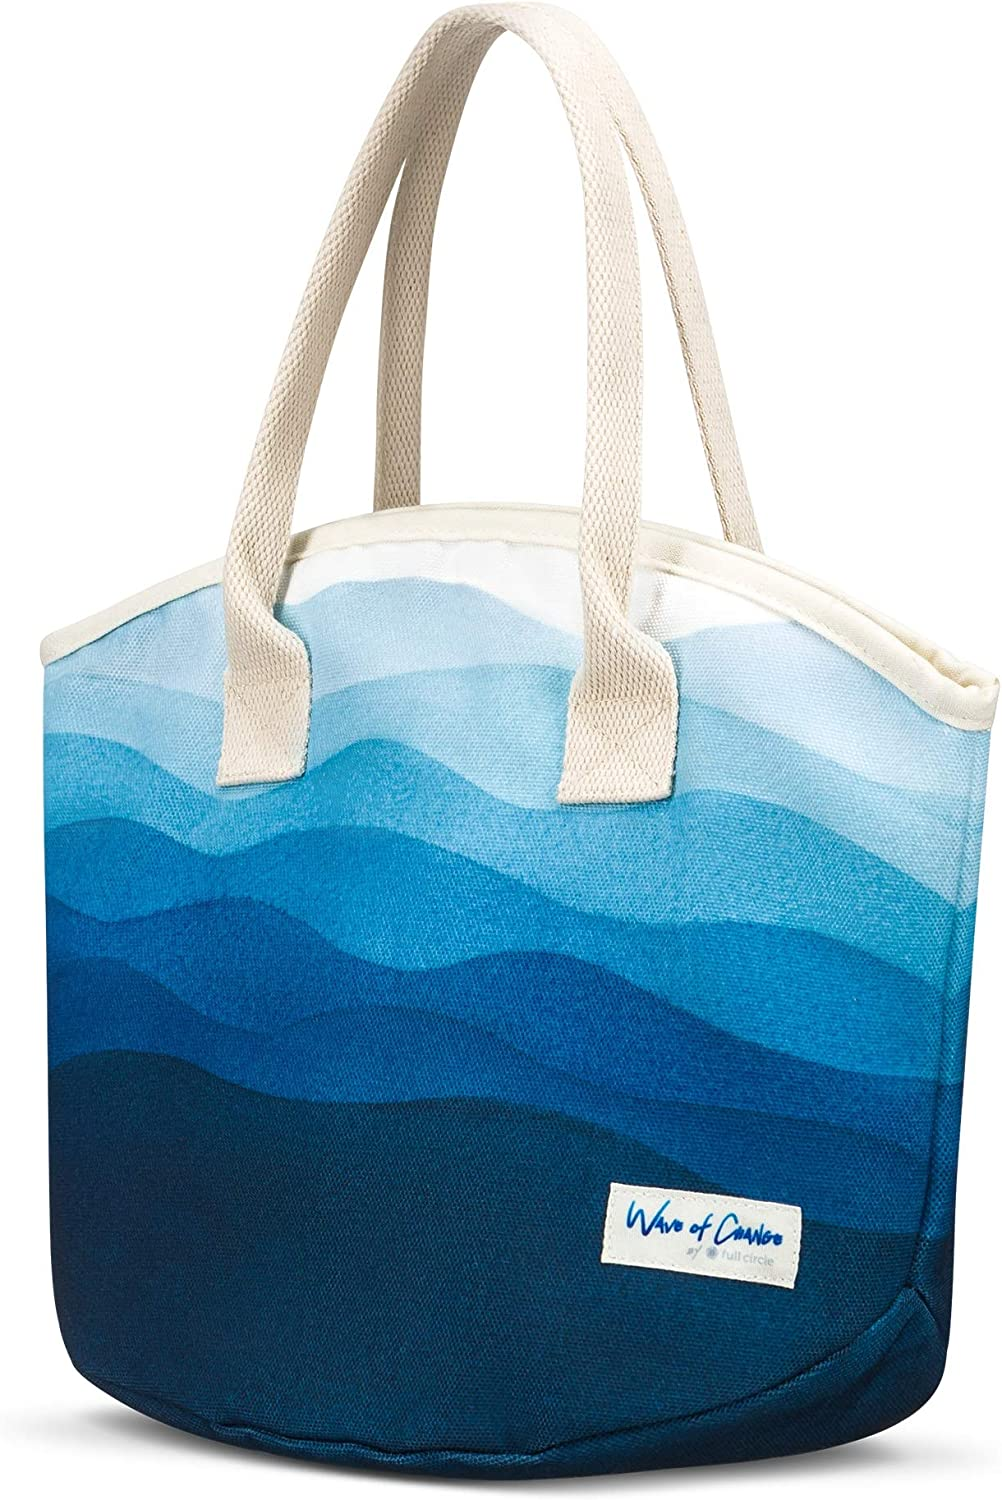 Waves of Change Insulated Recycled Plastic, Medium Lunch Bag-8 Can Capacity